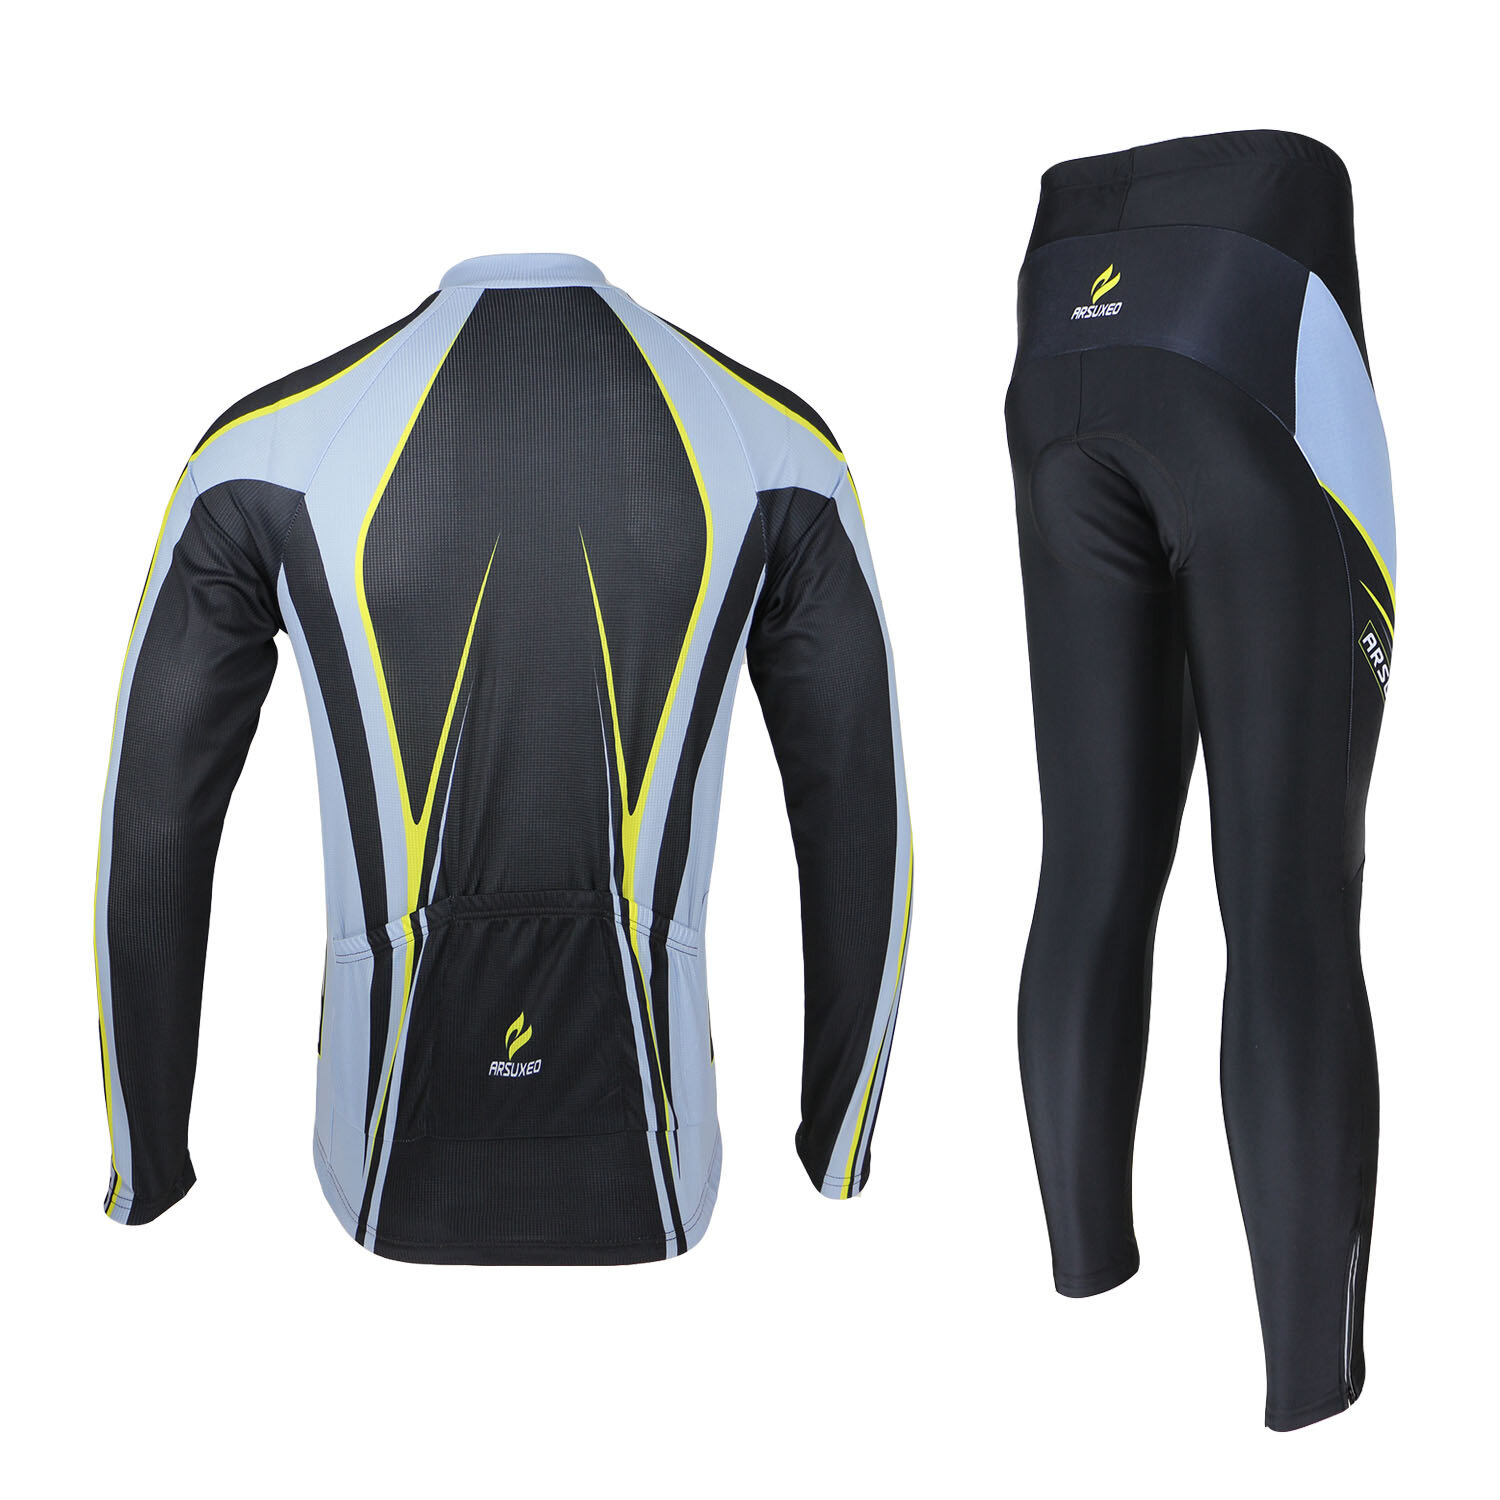 Mens Bicycle Bike Clothing Suit Cycling Cloth Sportswear Bib Shorts - 9